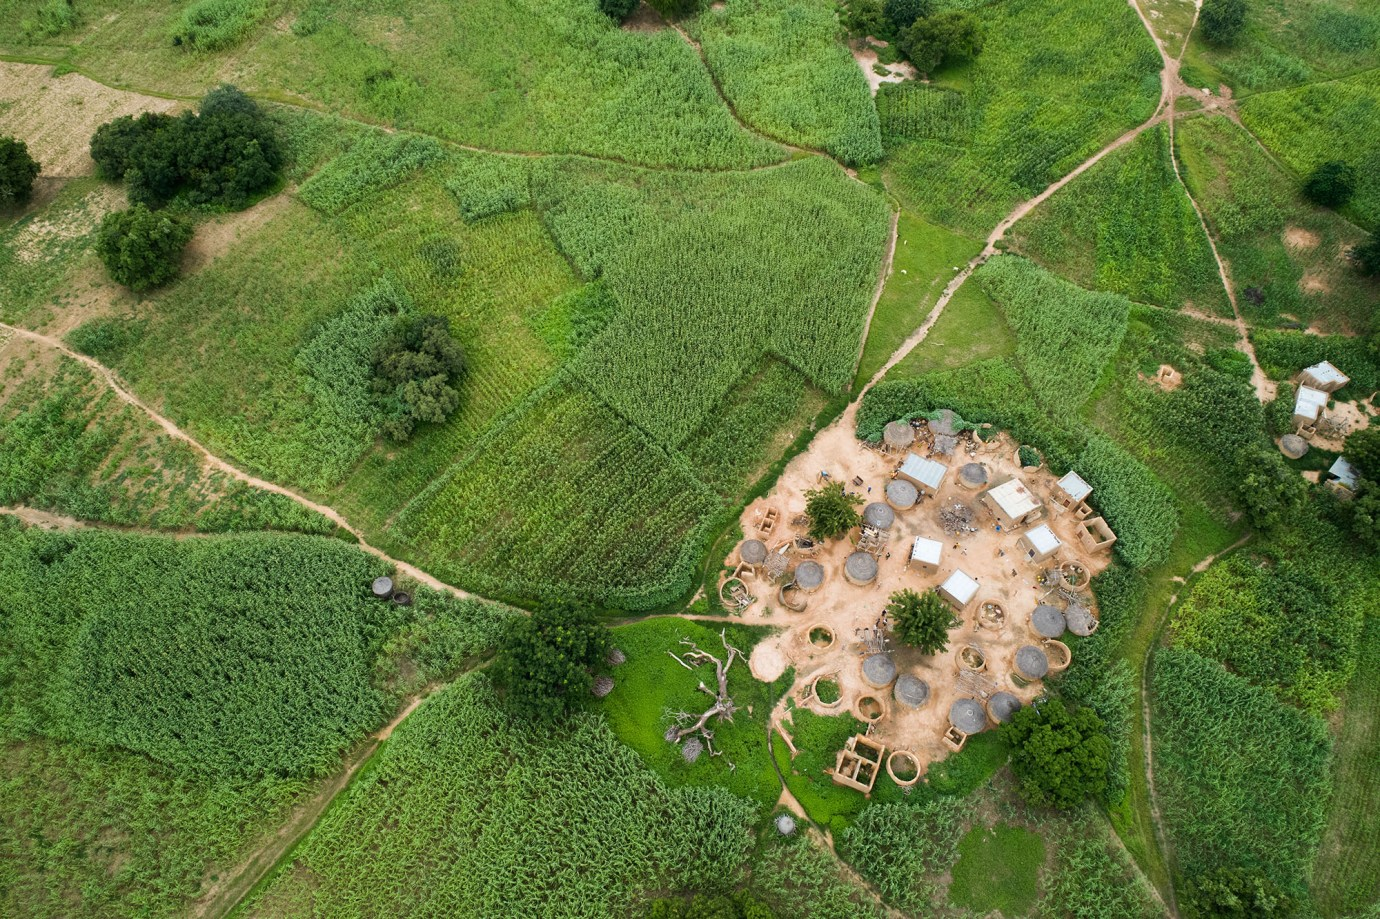 A family compound is surrounded by fertile green farmland in Burkina Faso.